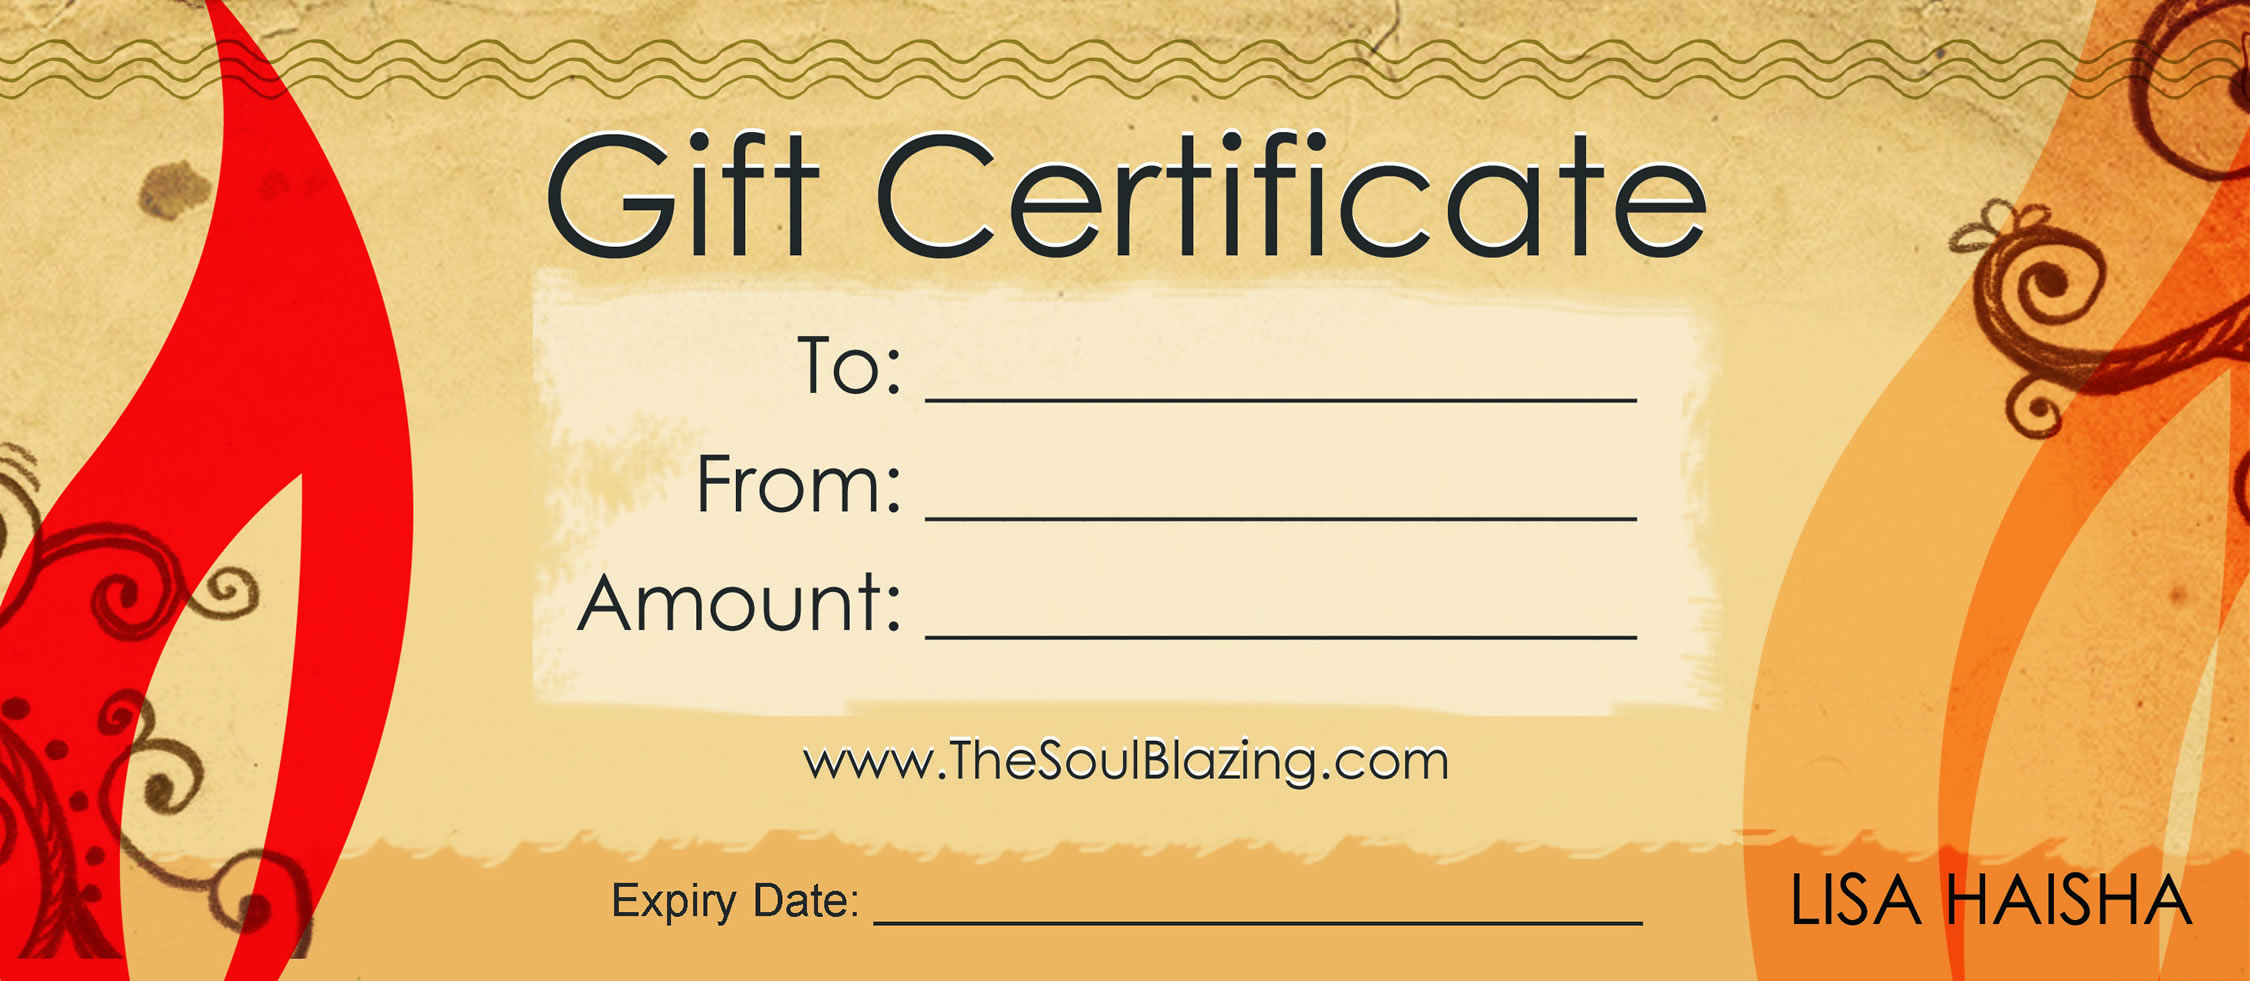 gift certificate free